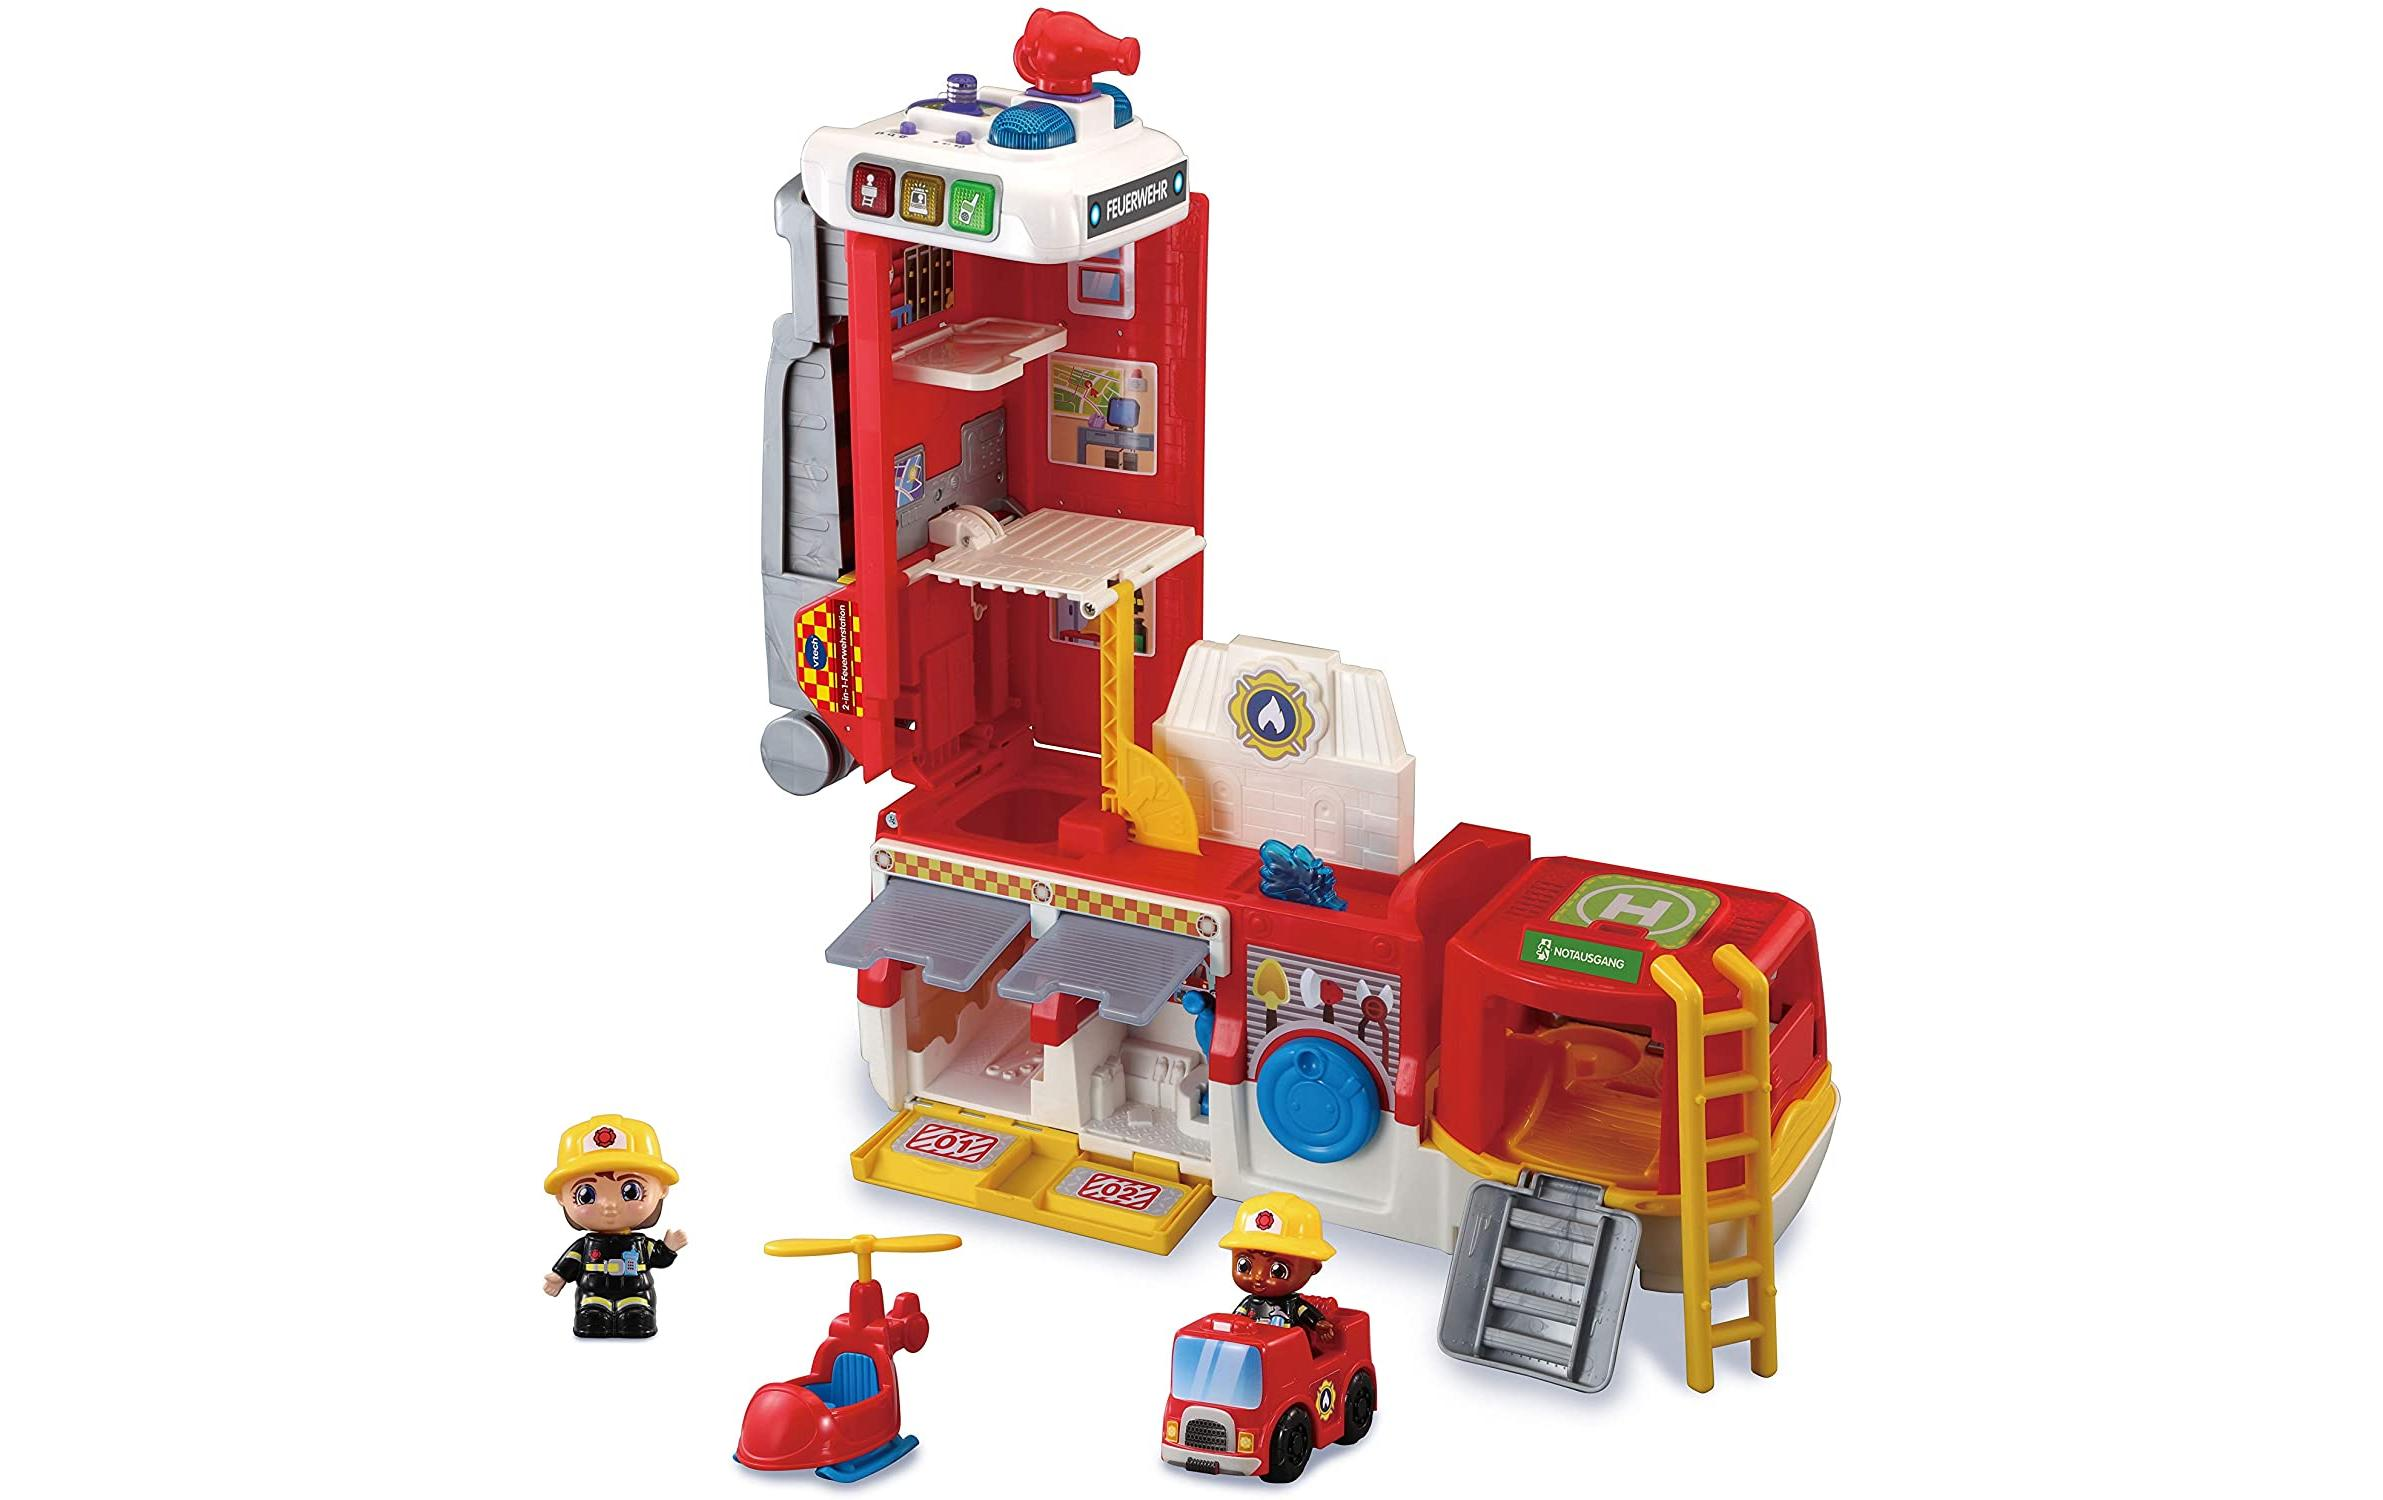 Image of 2 in 1 Feuerwehrstation, VTech